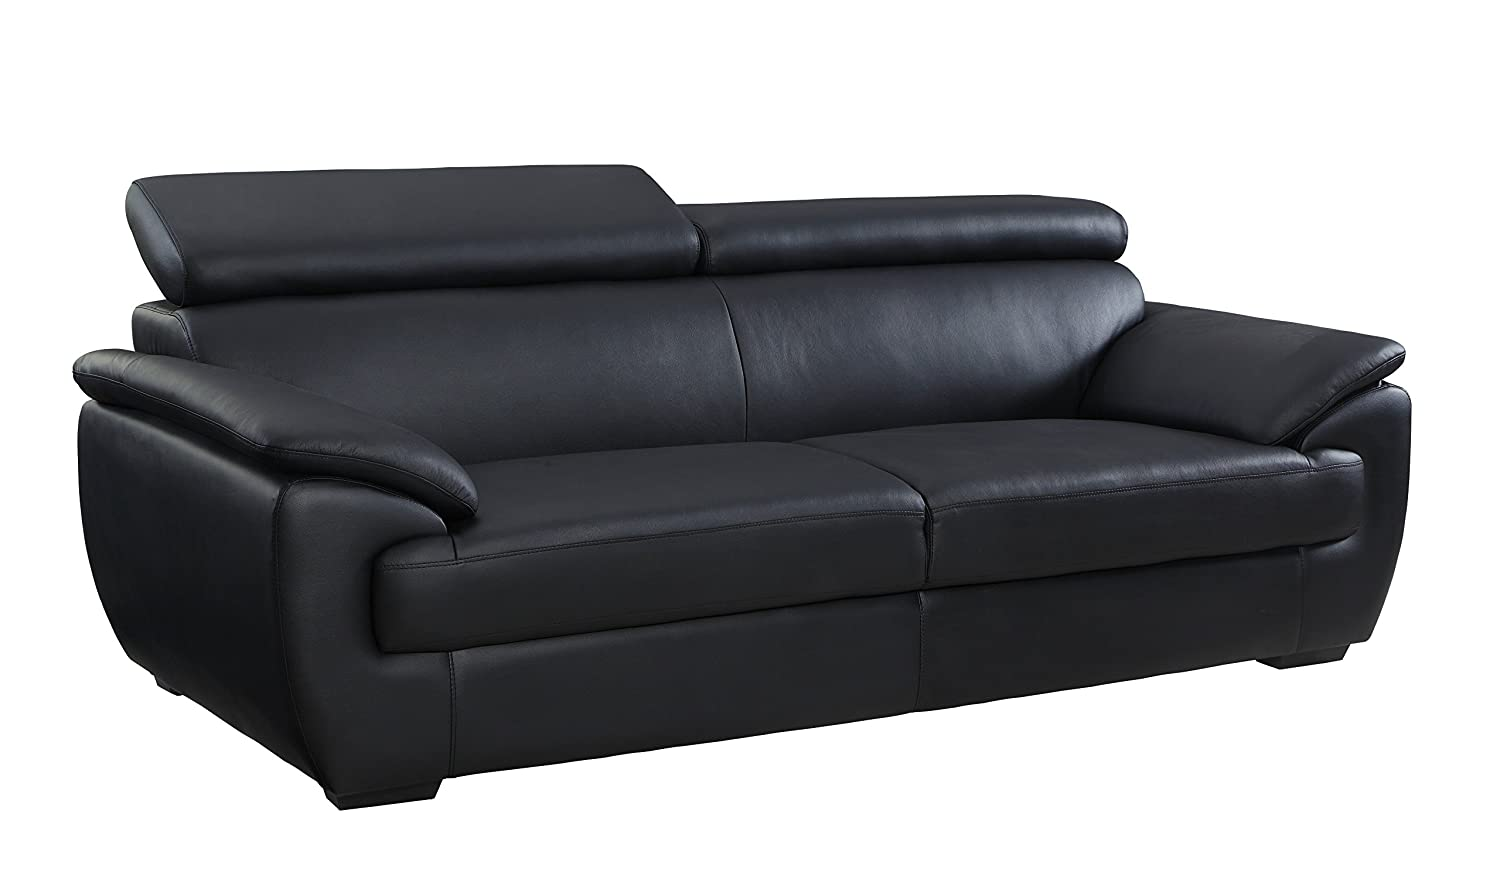 Amazon.com: Blackjack Furniture The Veal Collection Leather ...